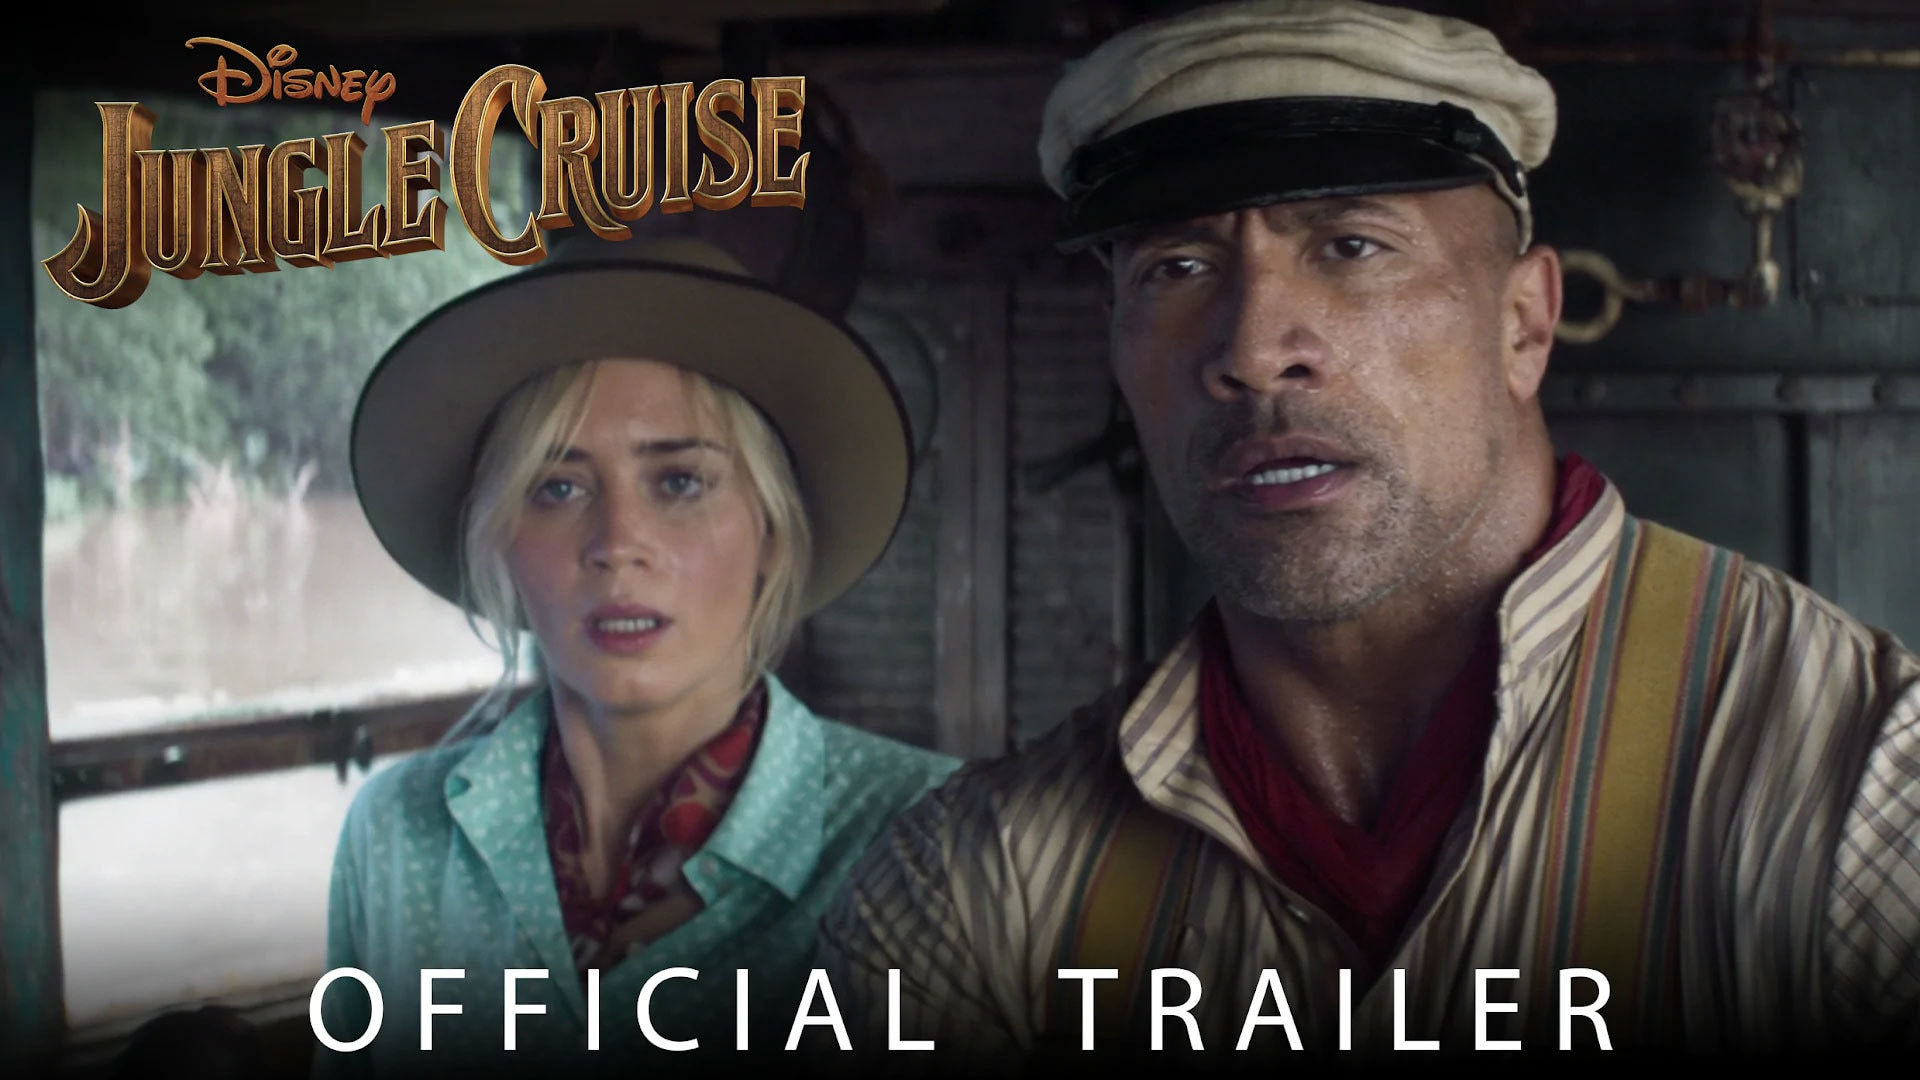 Disney's Jungle Cruise Trailer